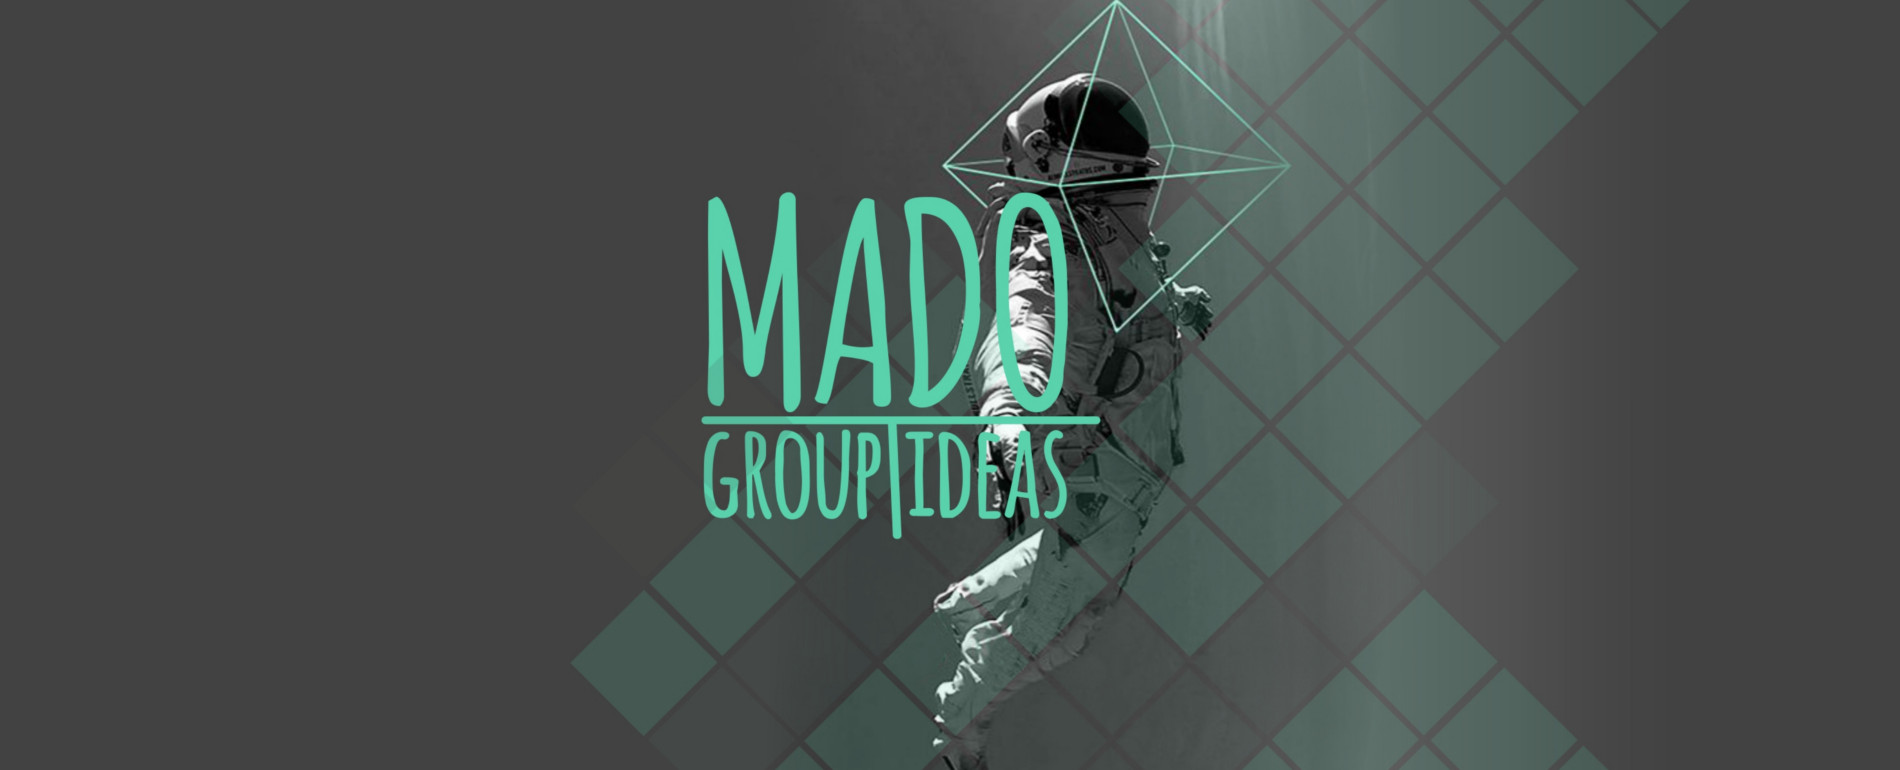 Mado Group Ideas Tappeti Personalizzati